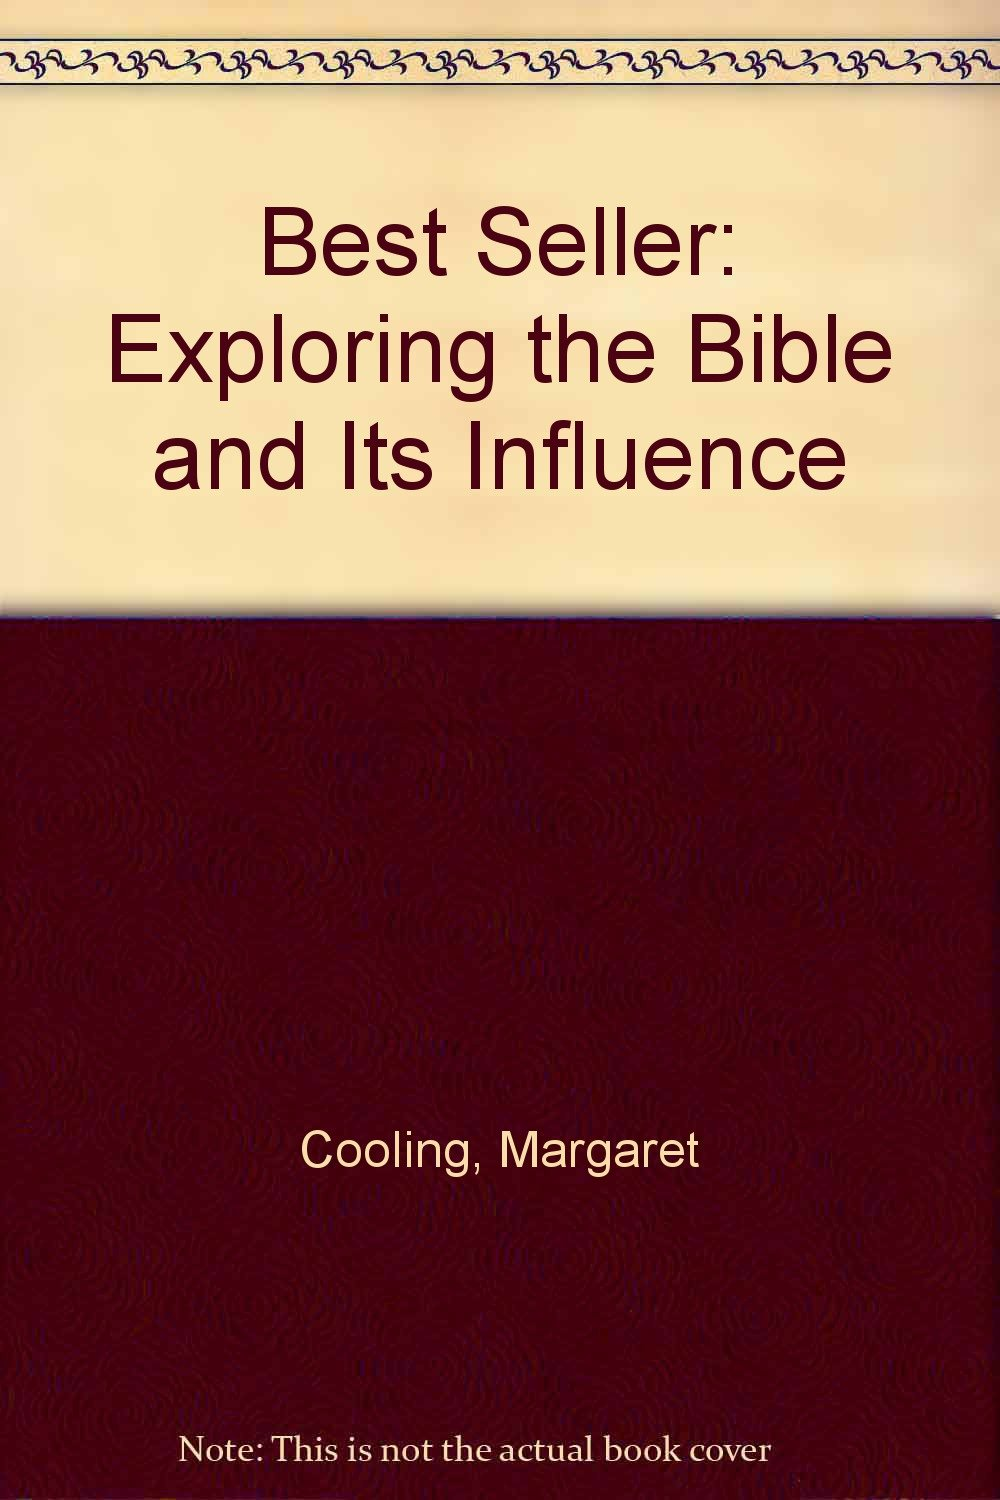 Best Seller: Exploring the Bible and Its Influence